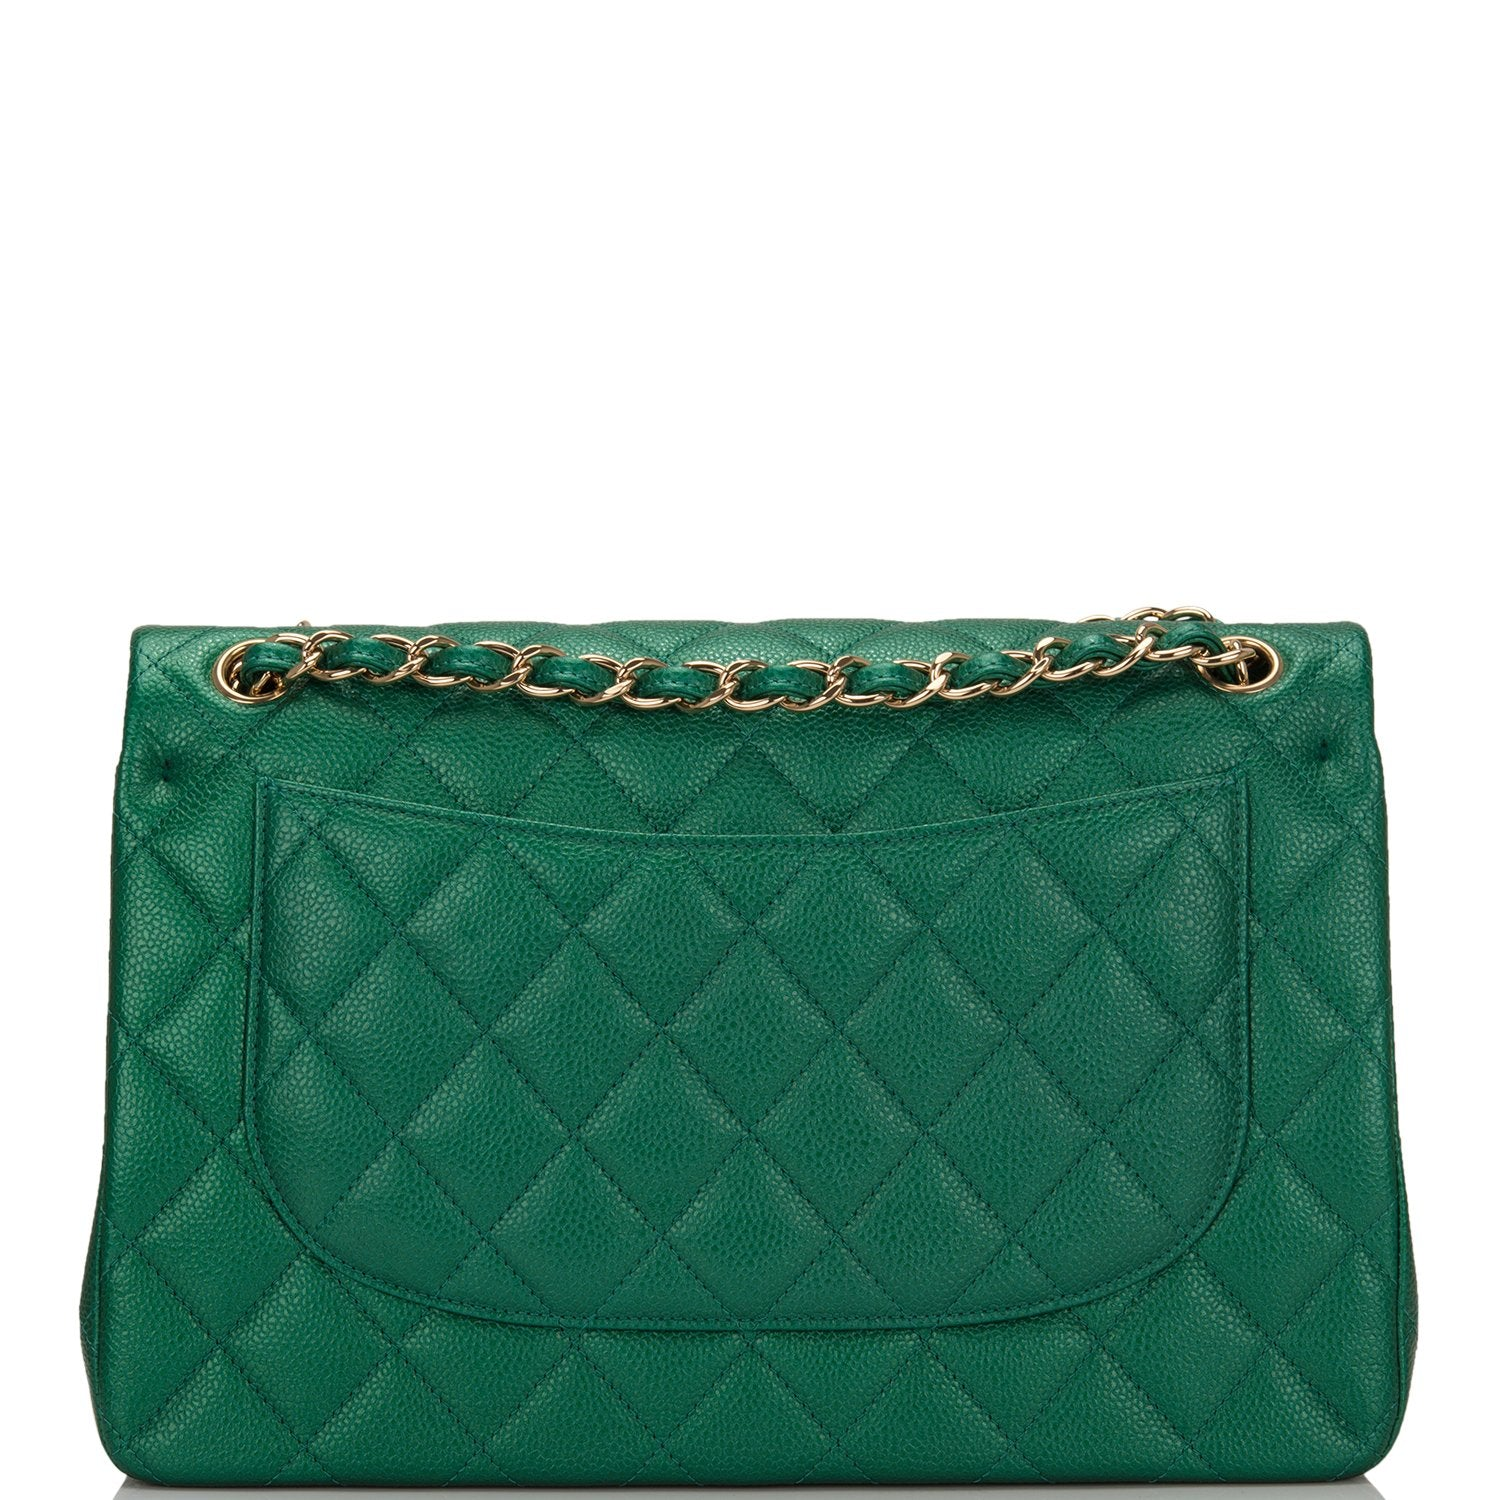 064efbfce850 Chanel Green Shiny Quilted Caviar Jumbo Classic Double Flap Bag ...